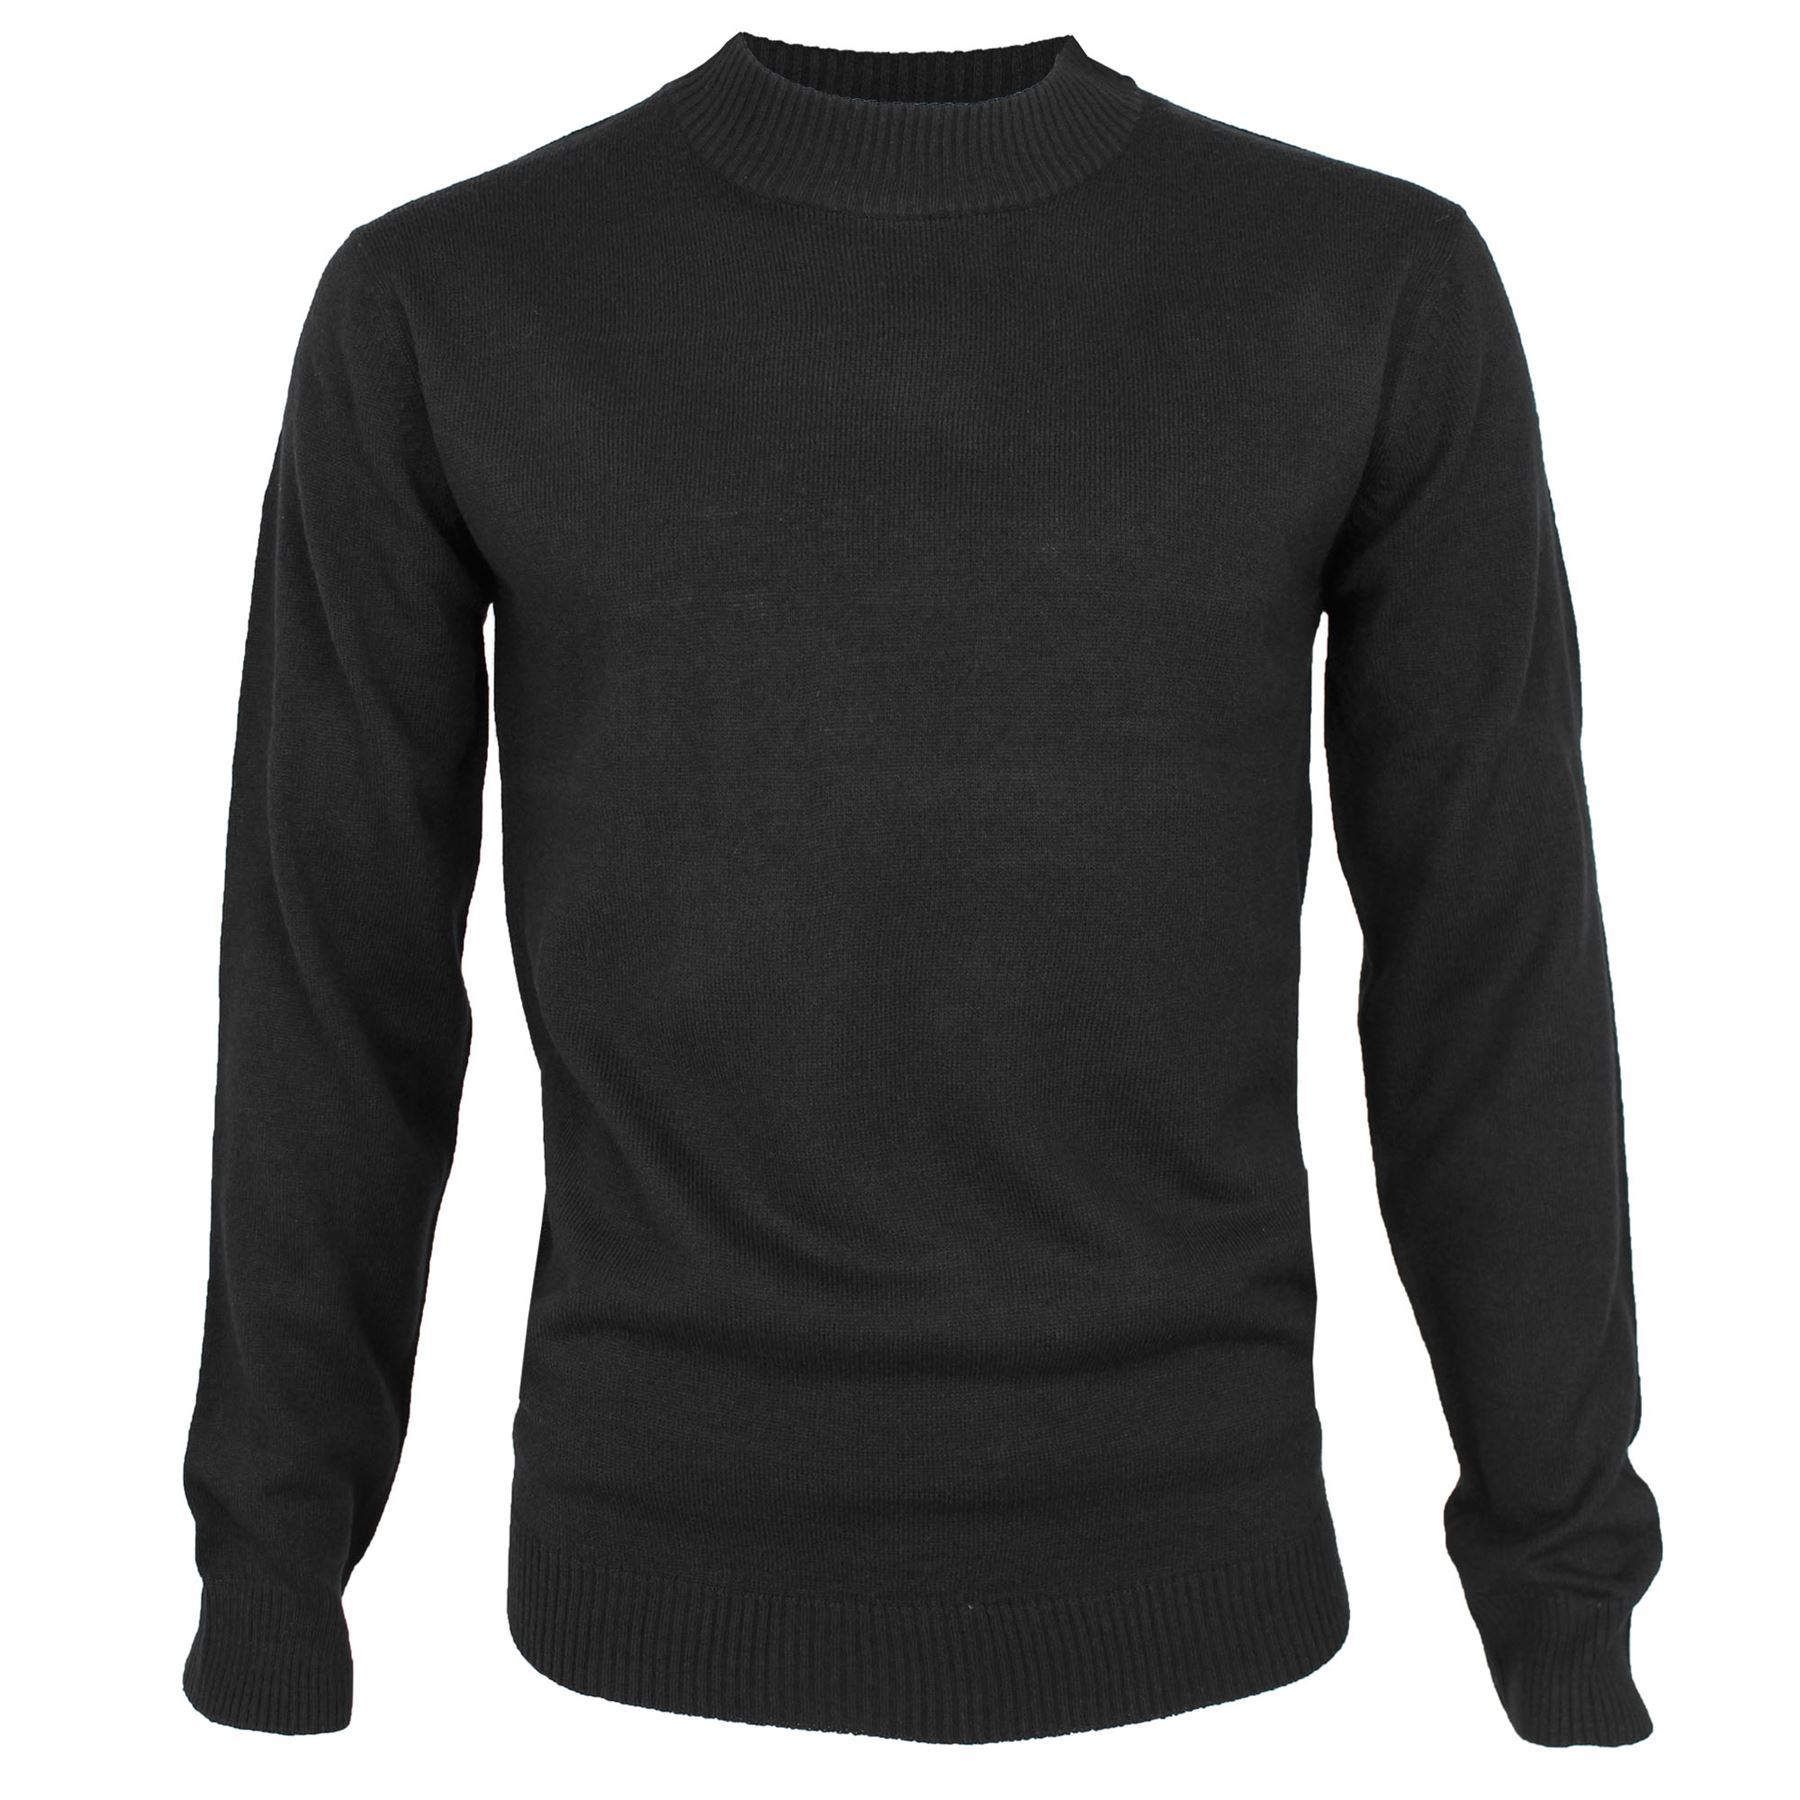 Sweaters for Men. From laidback and comfortable to tailored and formal, Abercrombie & Fitch mens sweaters are made for modern comfort that never skimps on style. Crafted from quality materials like wool, cotton, and cashmere, each style is made to deliver unmatched softness, comfort, and warmth.